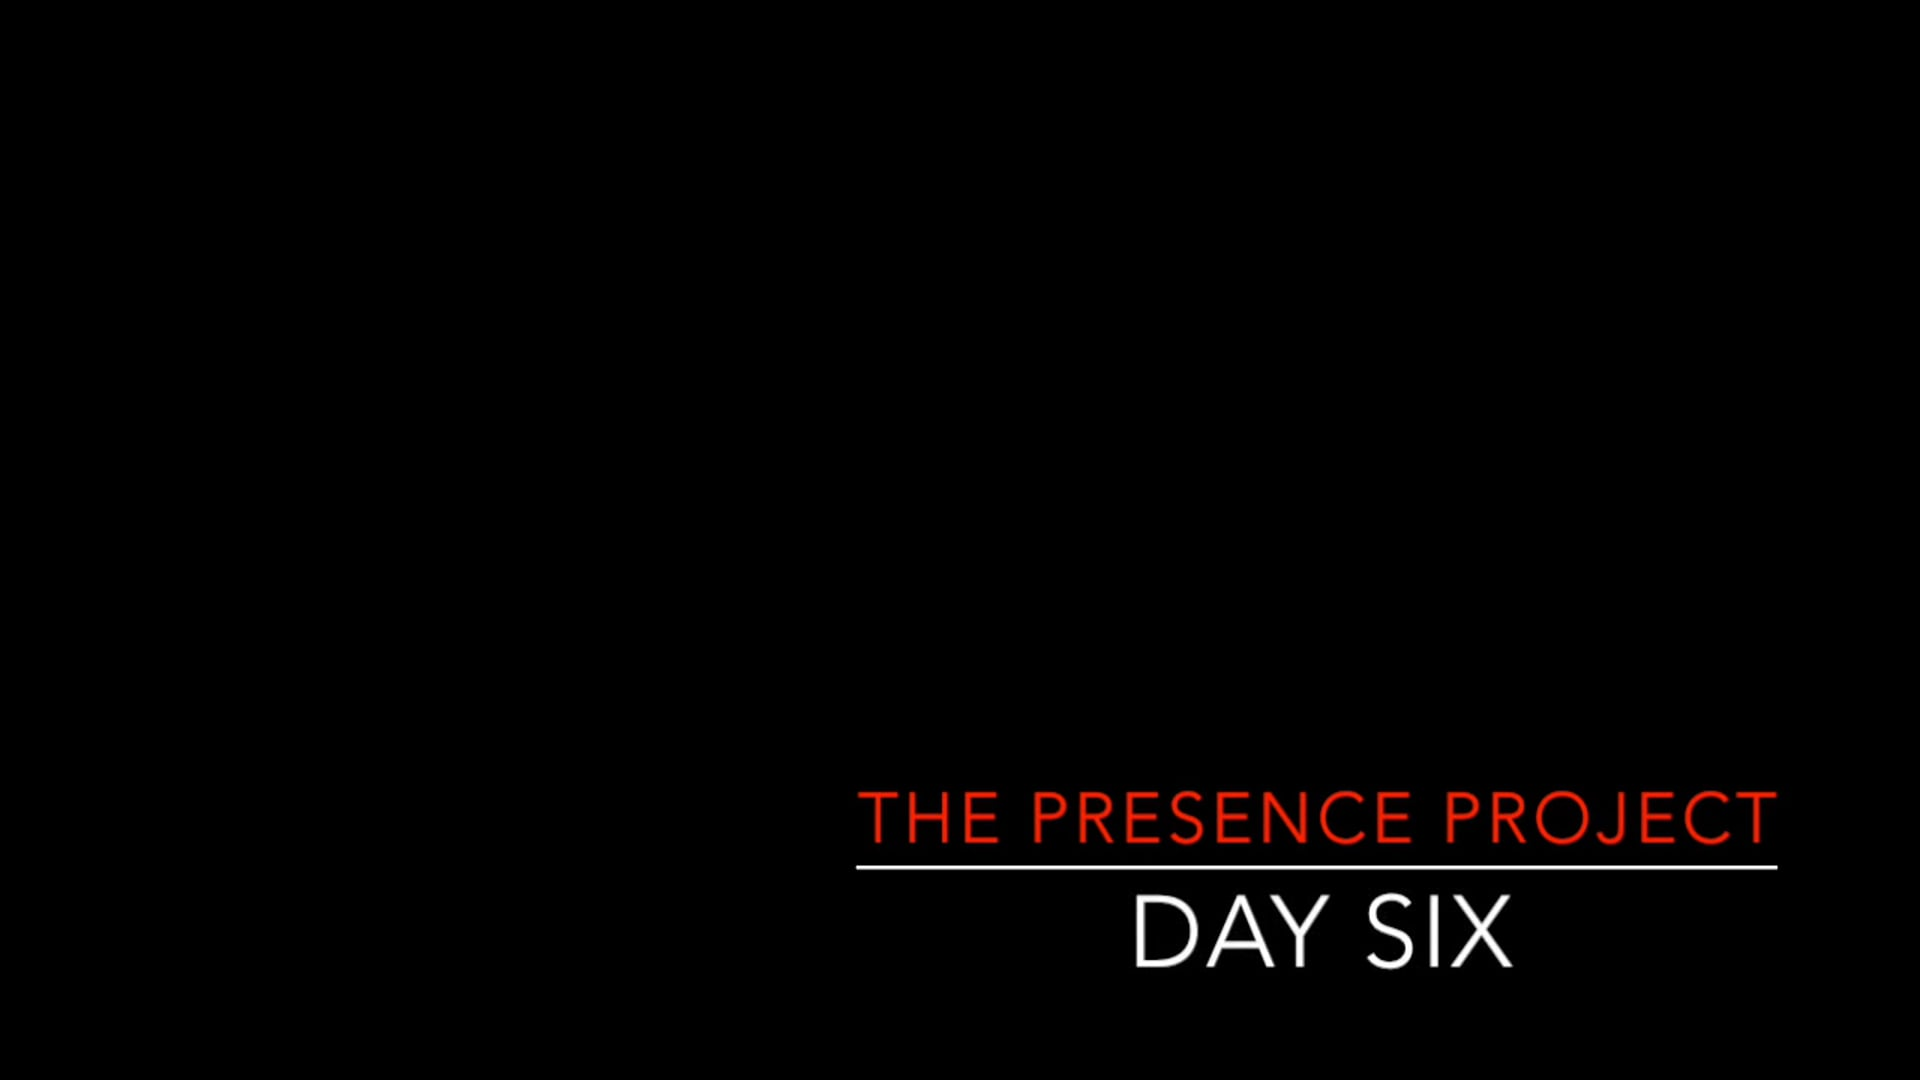 Presence Project, Day 6